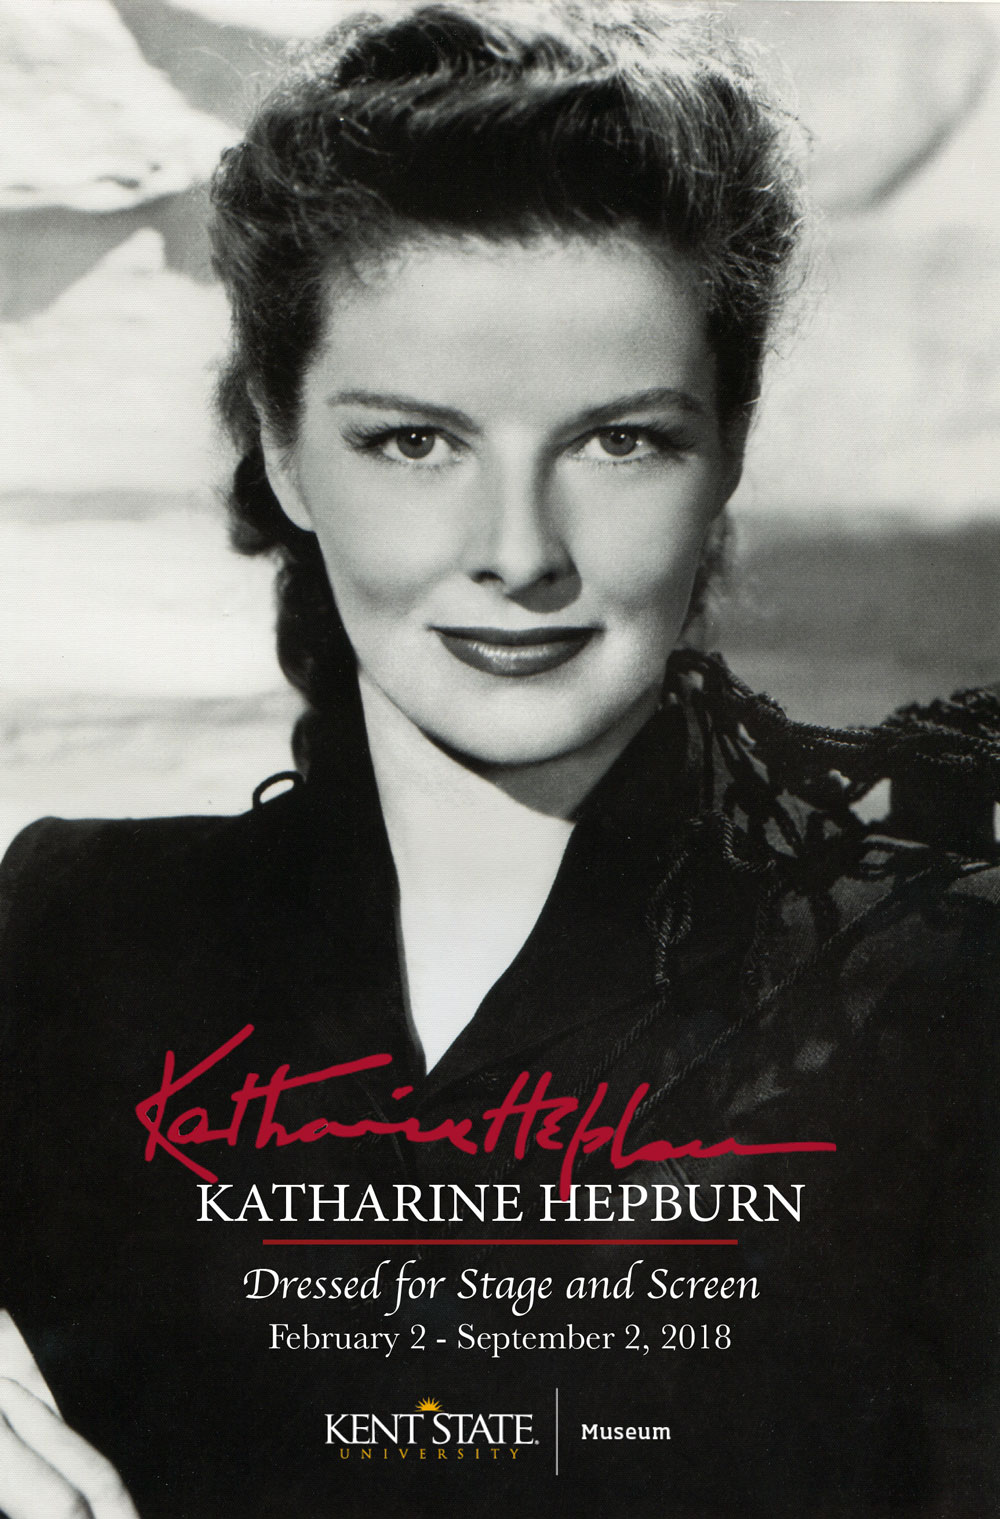 Katharine Hepburn - Dressed for Stage and Screen Exhibit will run February 2 through September 2, 2018